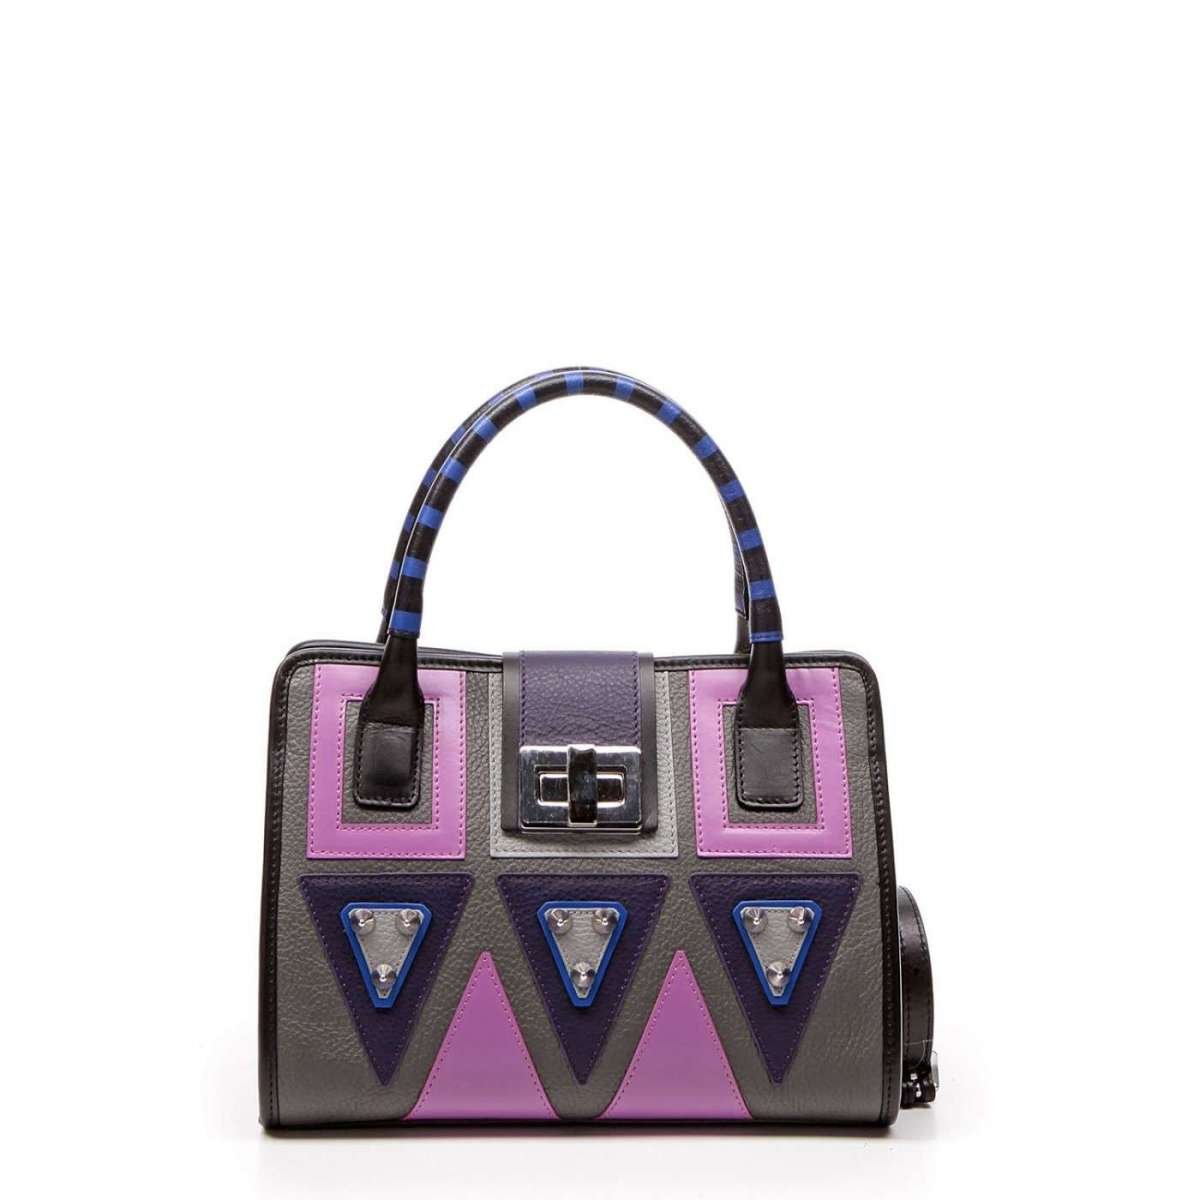 Handbag in color block Braccialini